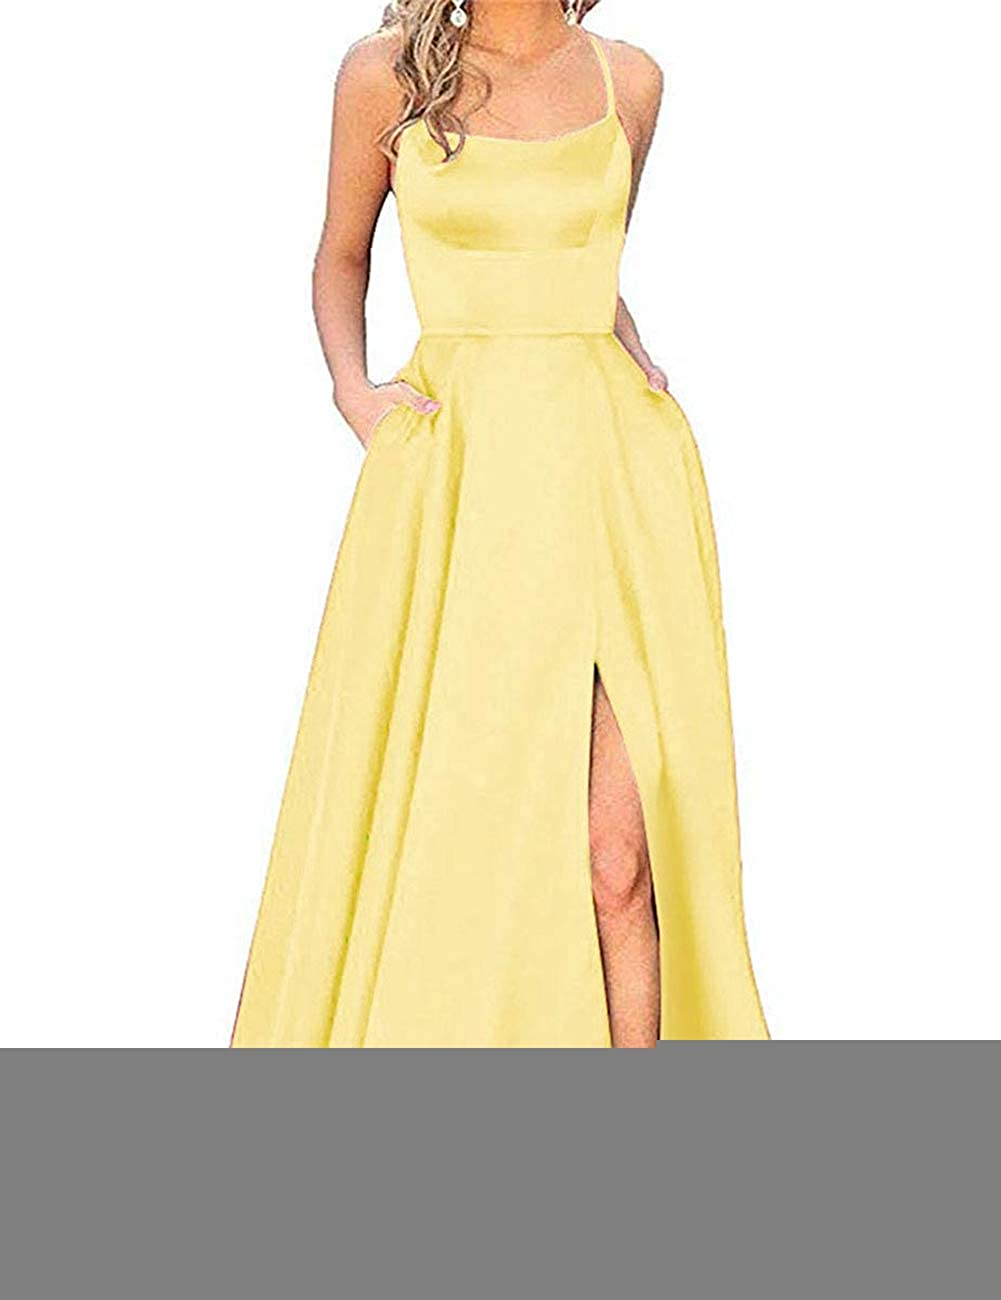 Yellow APXPF Women's Spaghetti Straps Satin Prom Dress Long Split ALine Formal Party Gown with Pockets